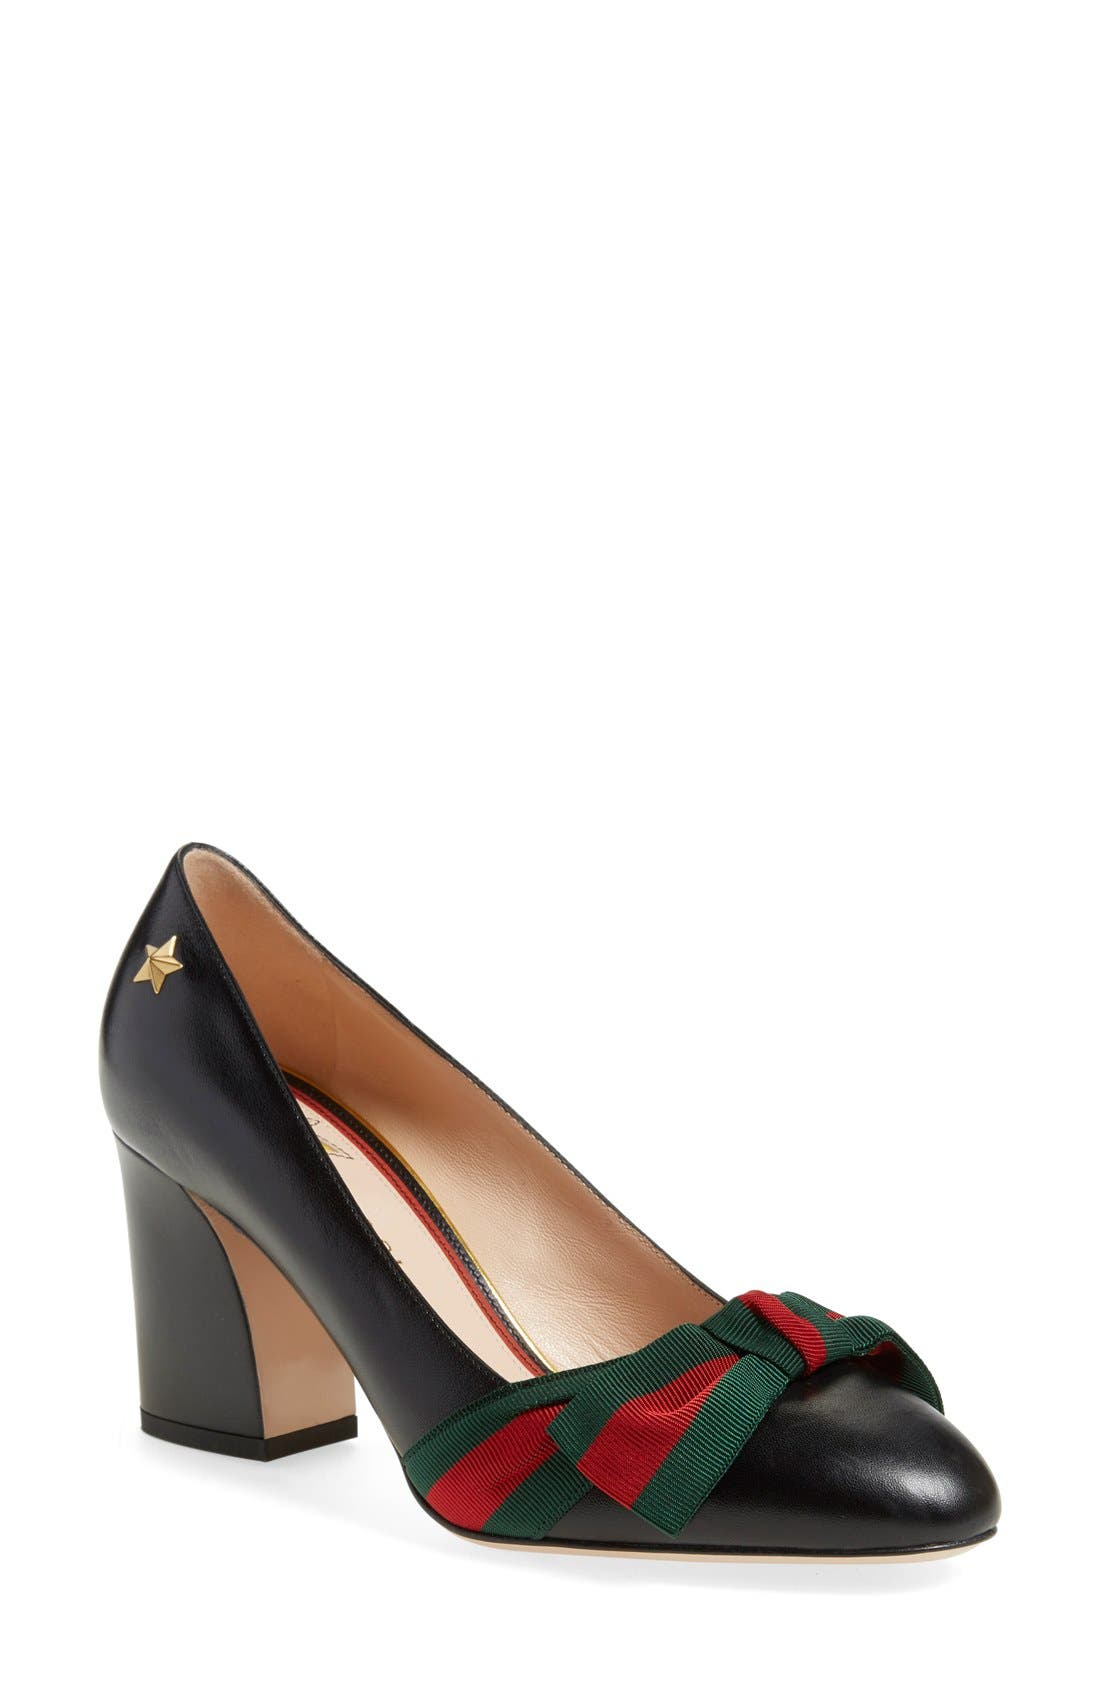 GUCCI 'Aline' Block Heel Pump